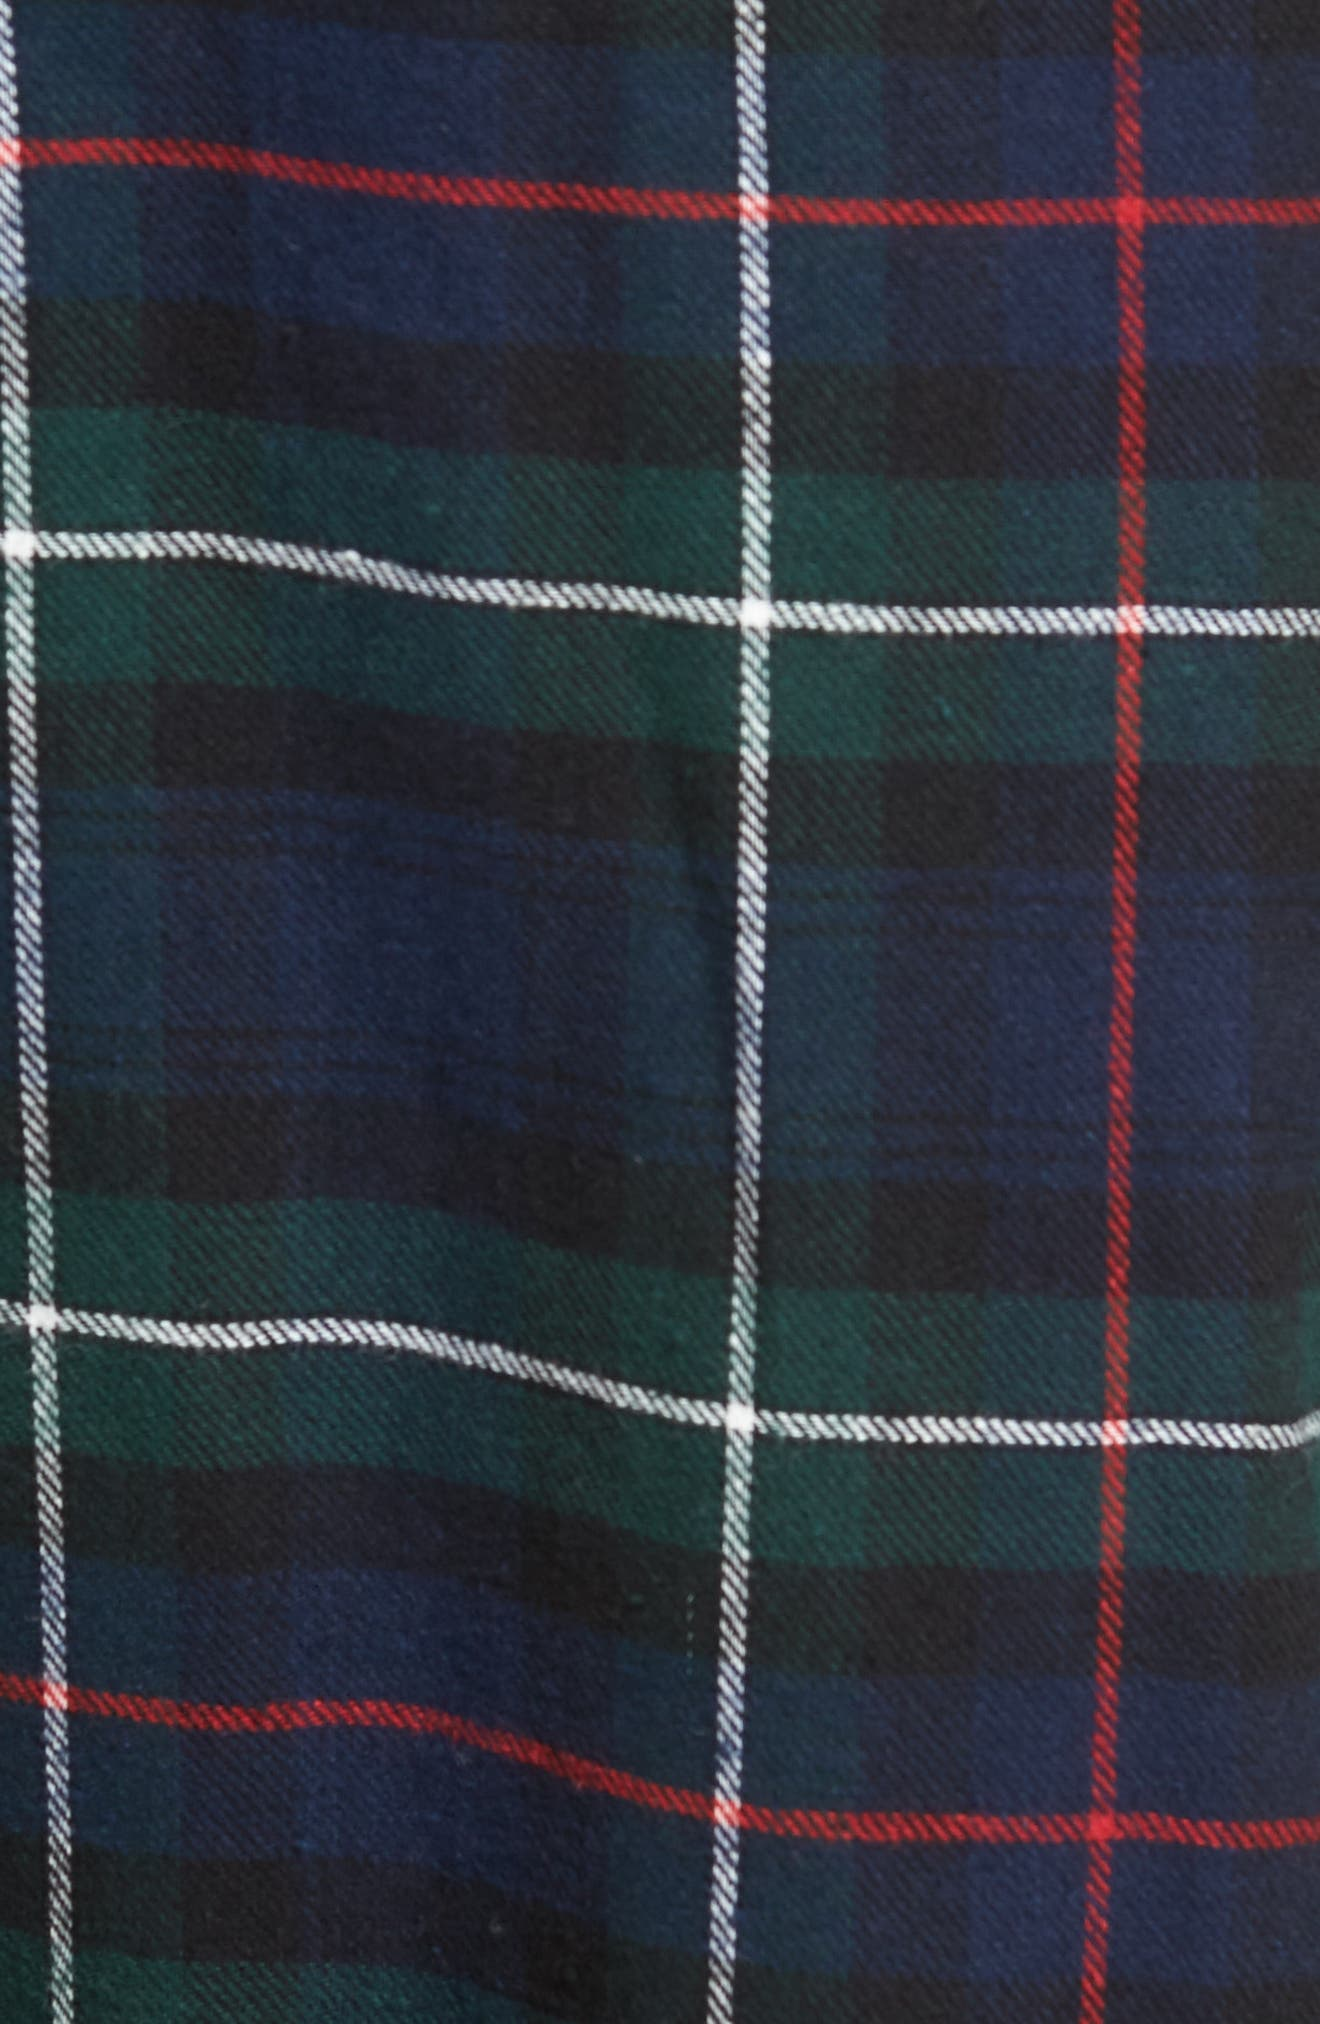 Flannel Pajama Pants,                             Alternate thumbnail 5, color,                             Blackwatch/ Cruise Navy/ Gold